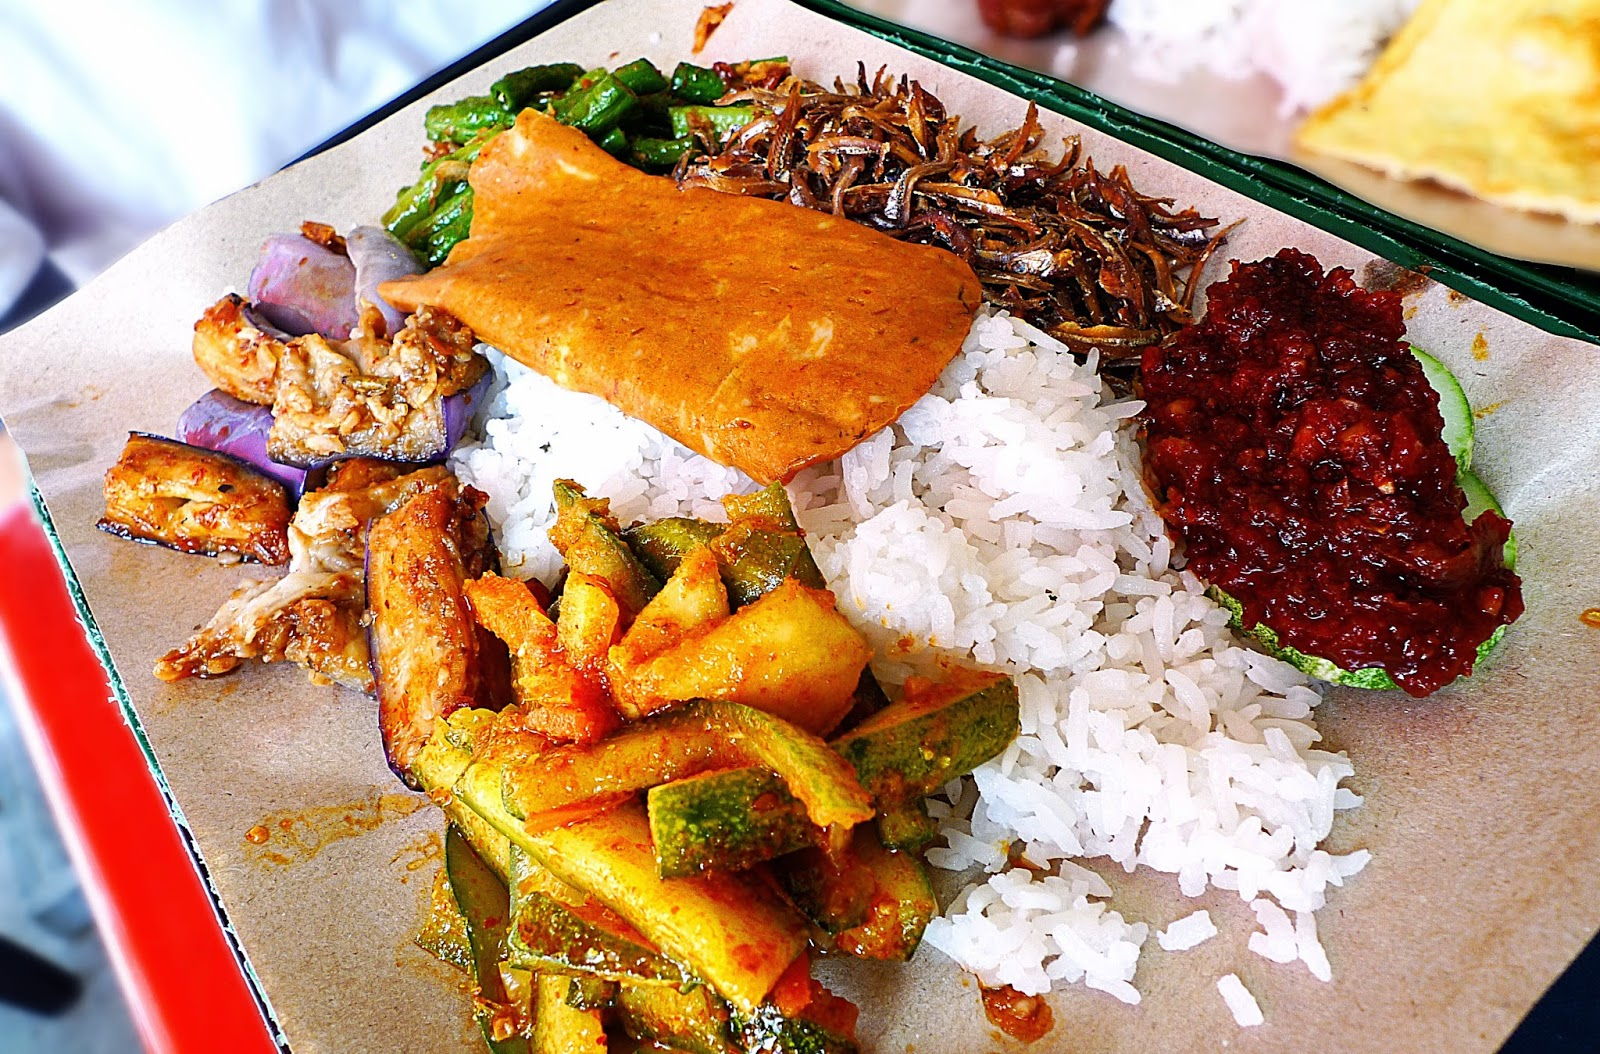 Customized nasi lemak